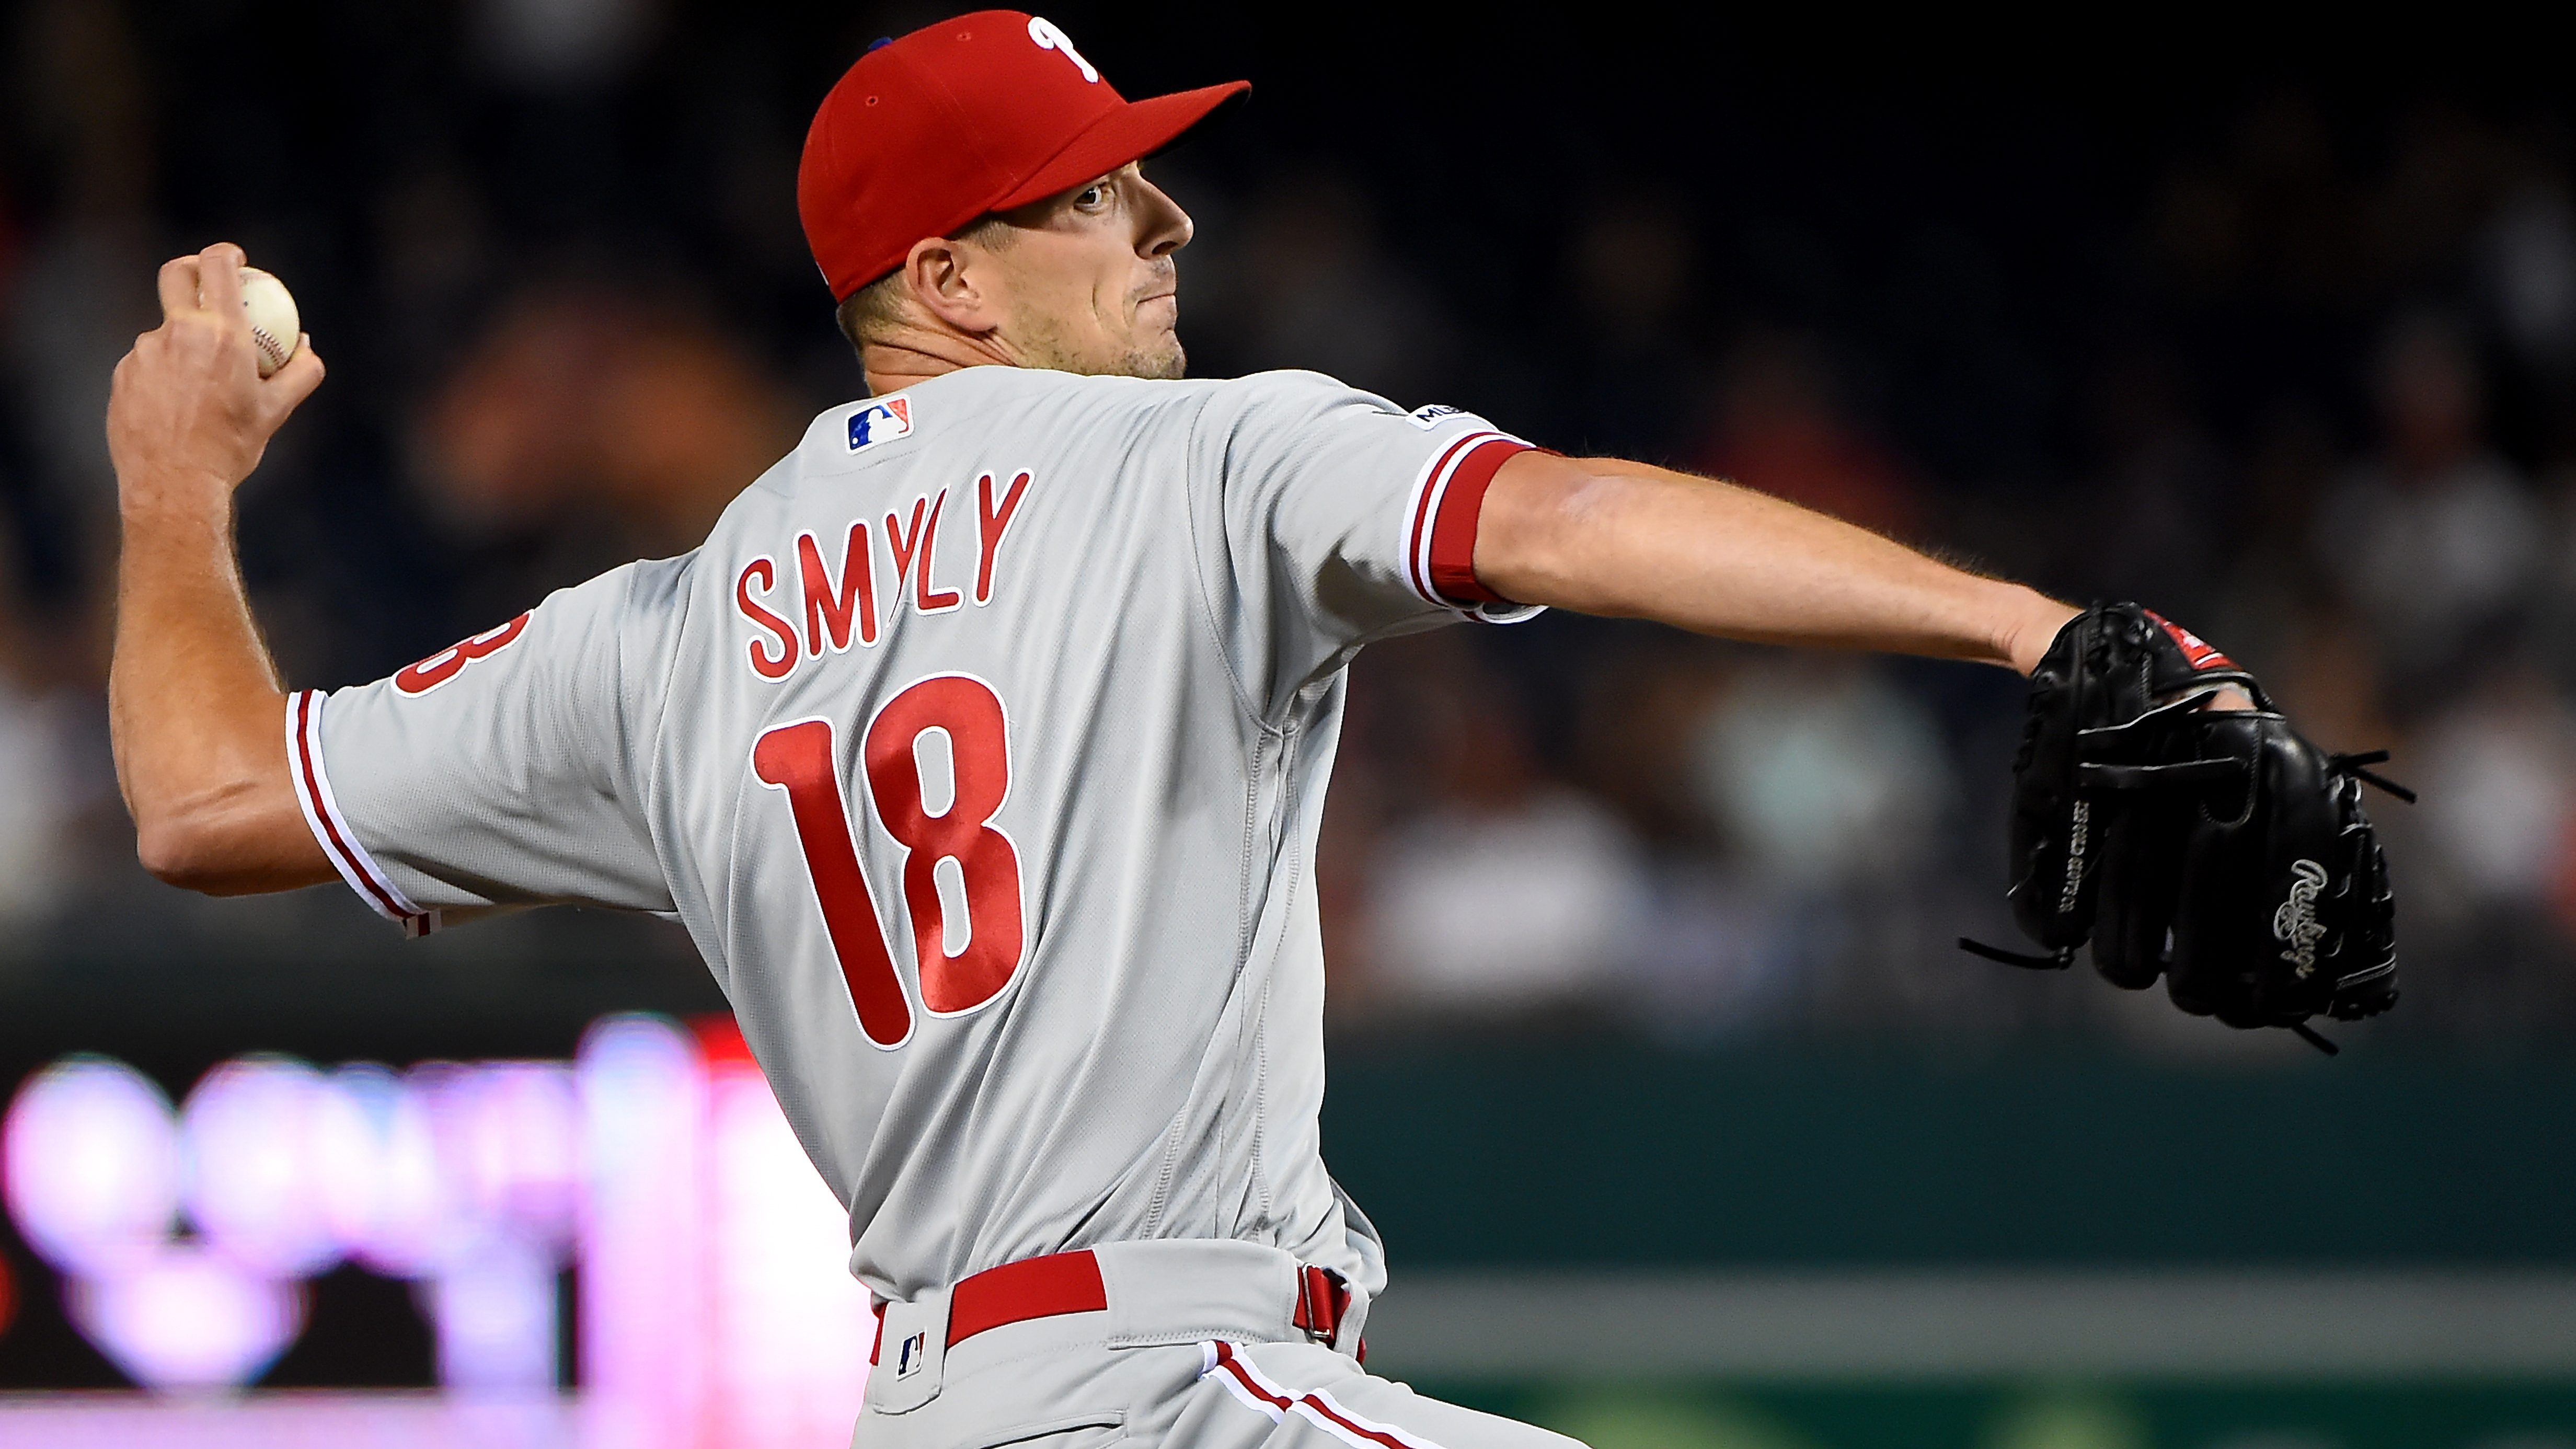 Giants sign Drew Smyly to one-year deal